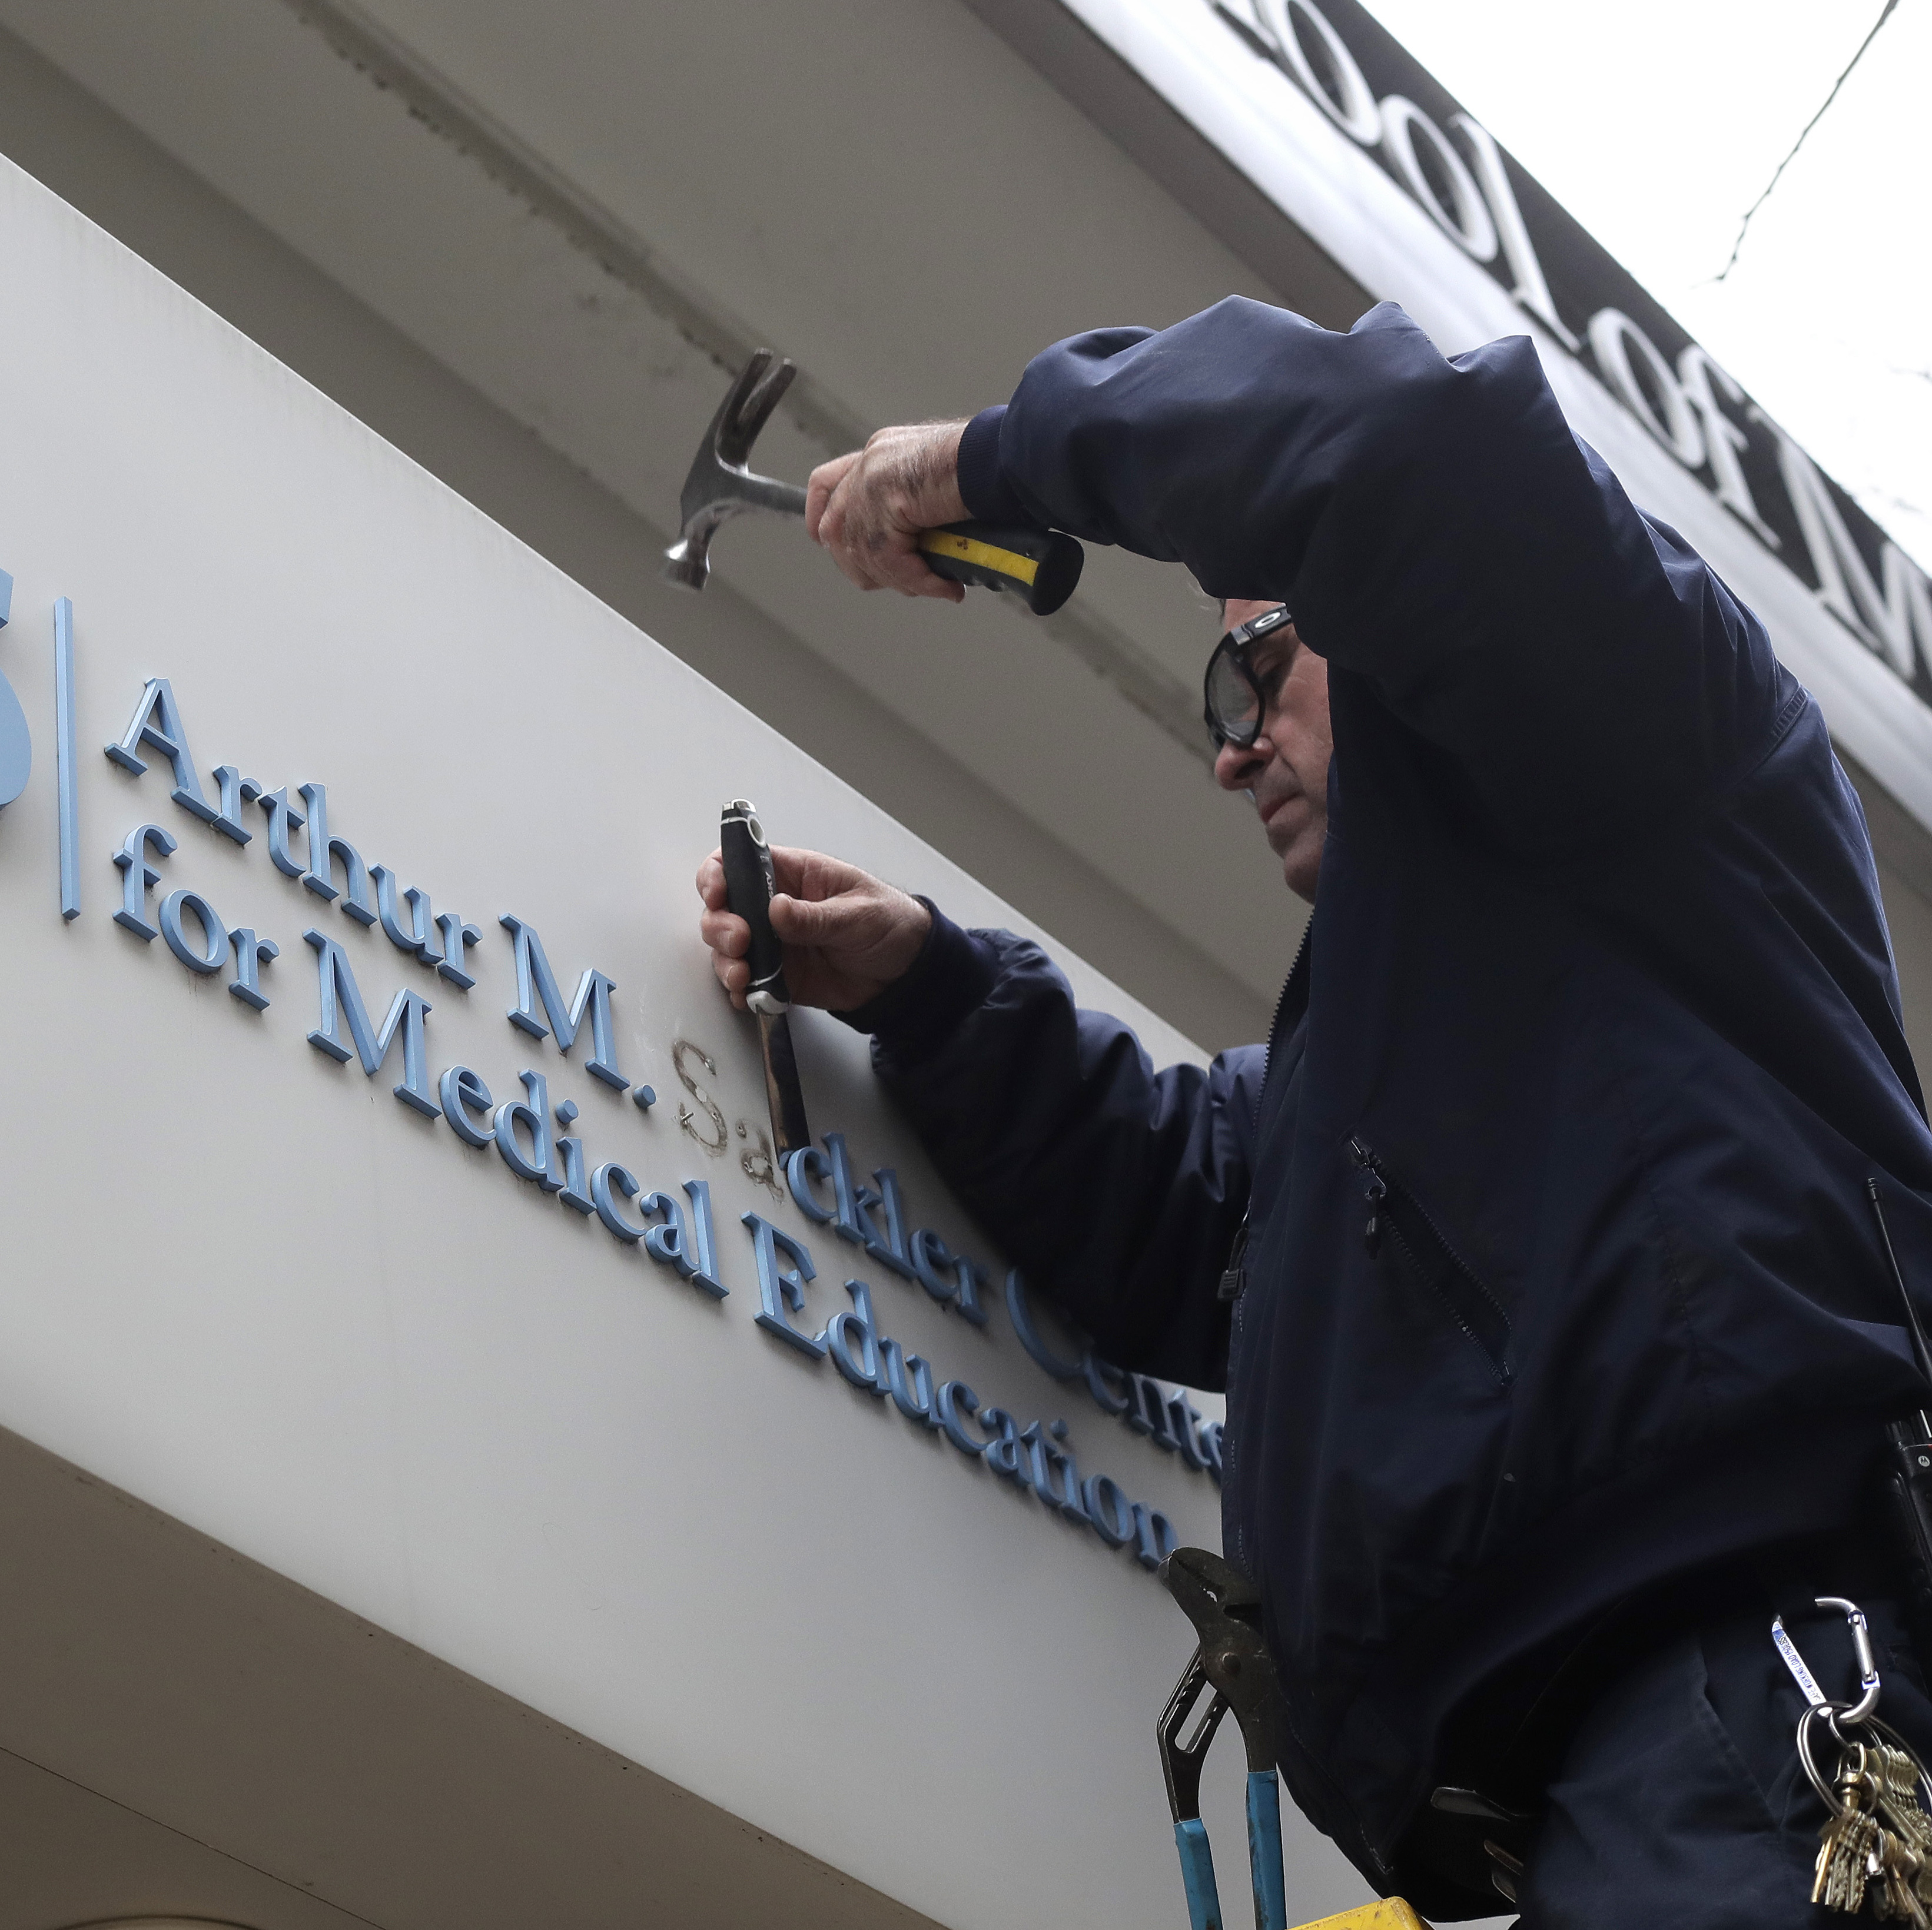 Worker Gabe Ryan removes a sign that includes the name Arthur M. Sackler at an entrance to Tufts School of Medicine, on Thursday, Dec. 5, 2019. Photo: AP/Steven Senne.